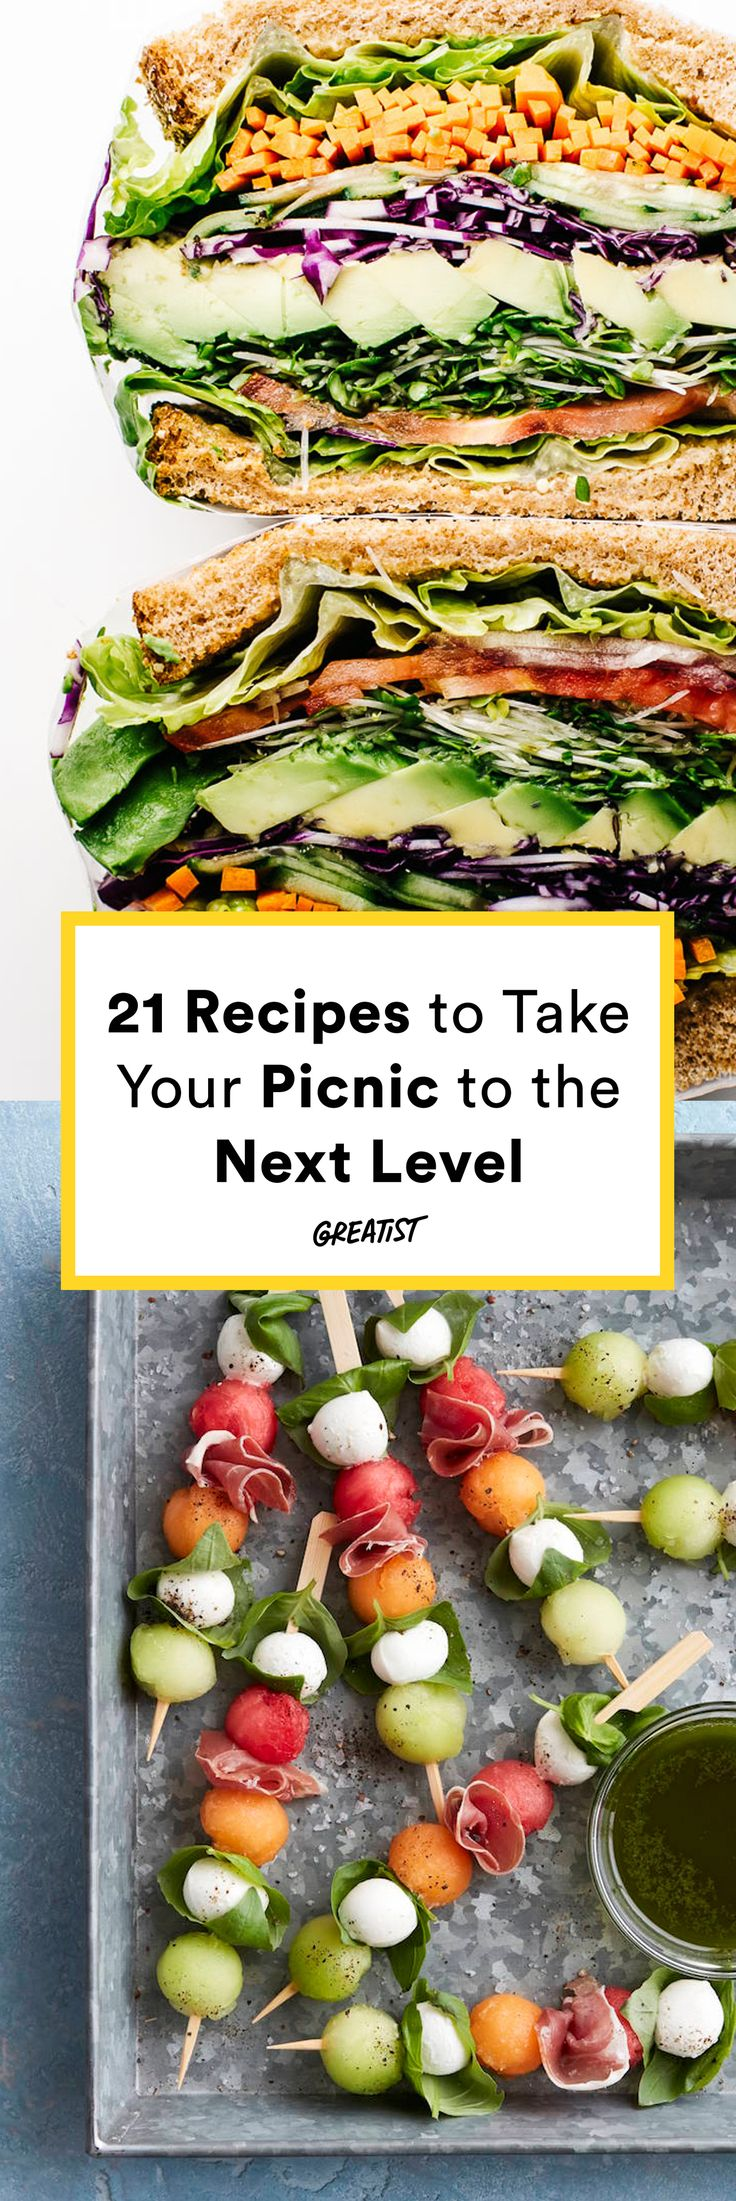 28 best healthy picnic ideas images on pinterest cooking recipes 21 recipes to take your picnic forumfinder Choice Image